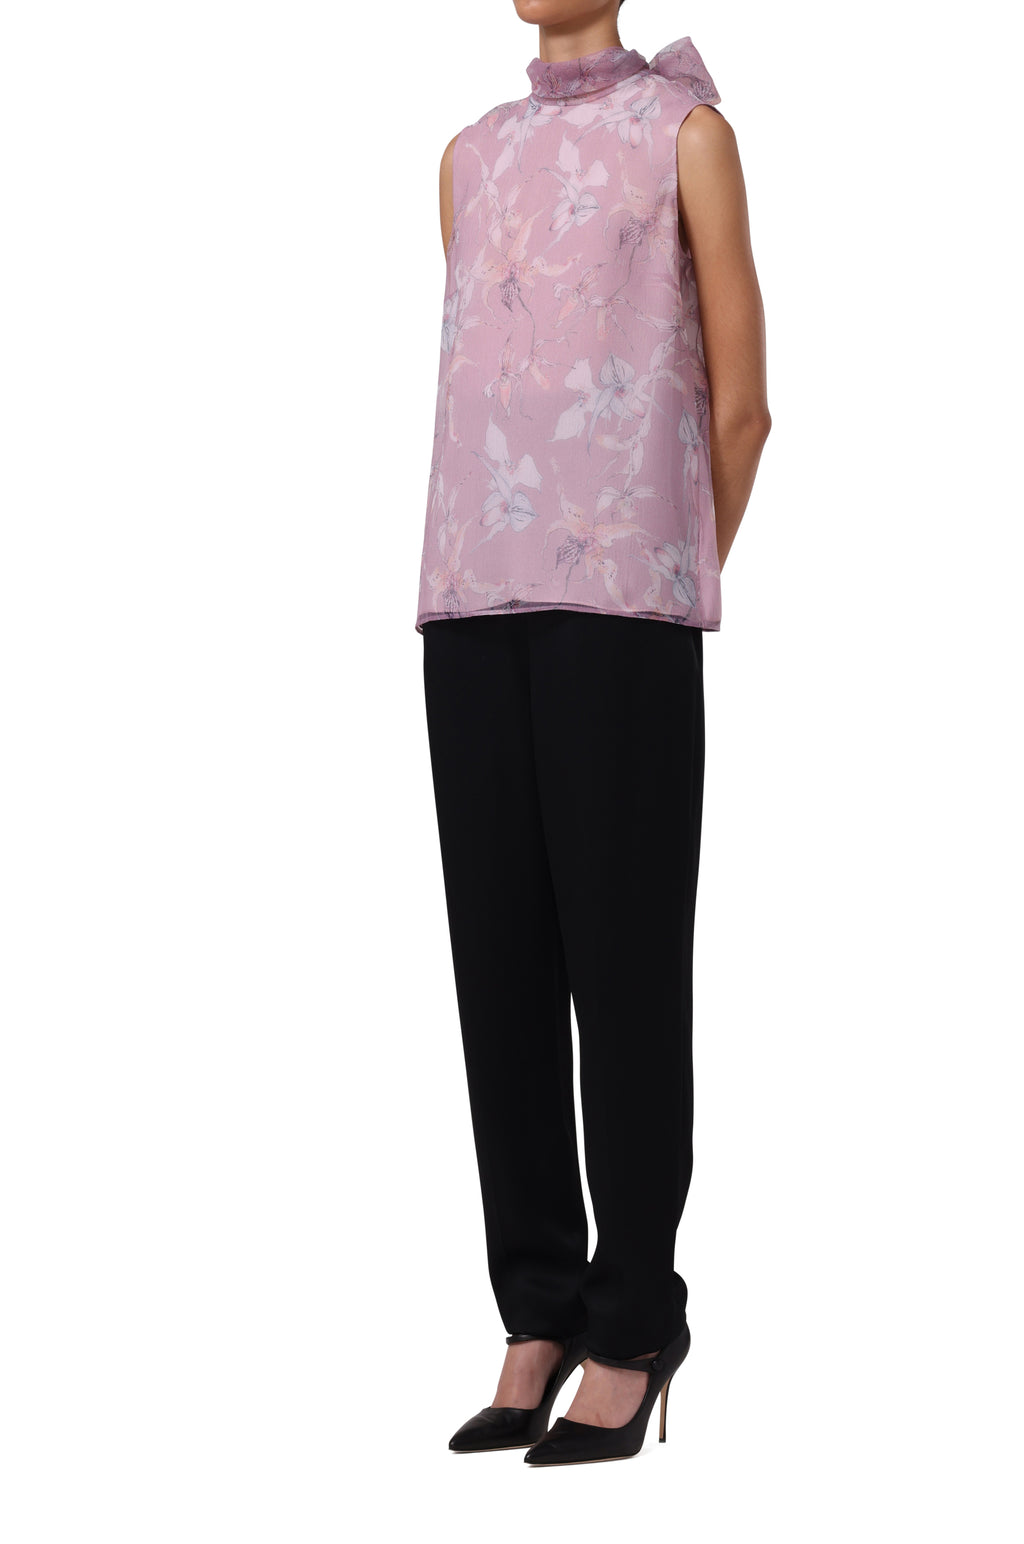 CHERRY BLOSSOM TOP WITH NECK TIE DETAIL